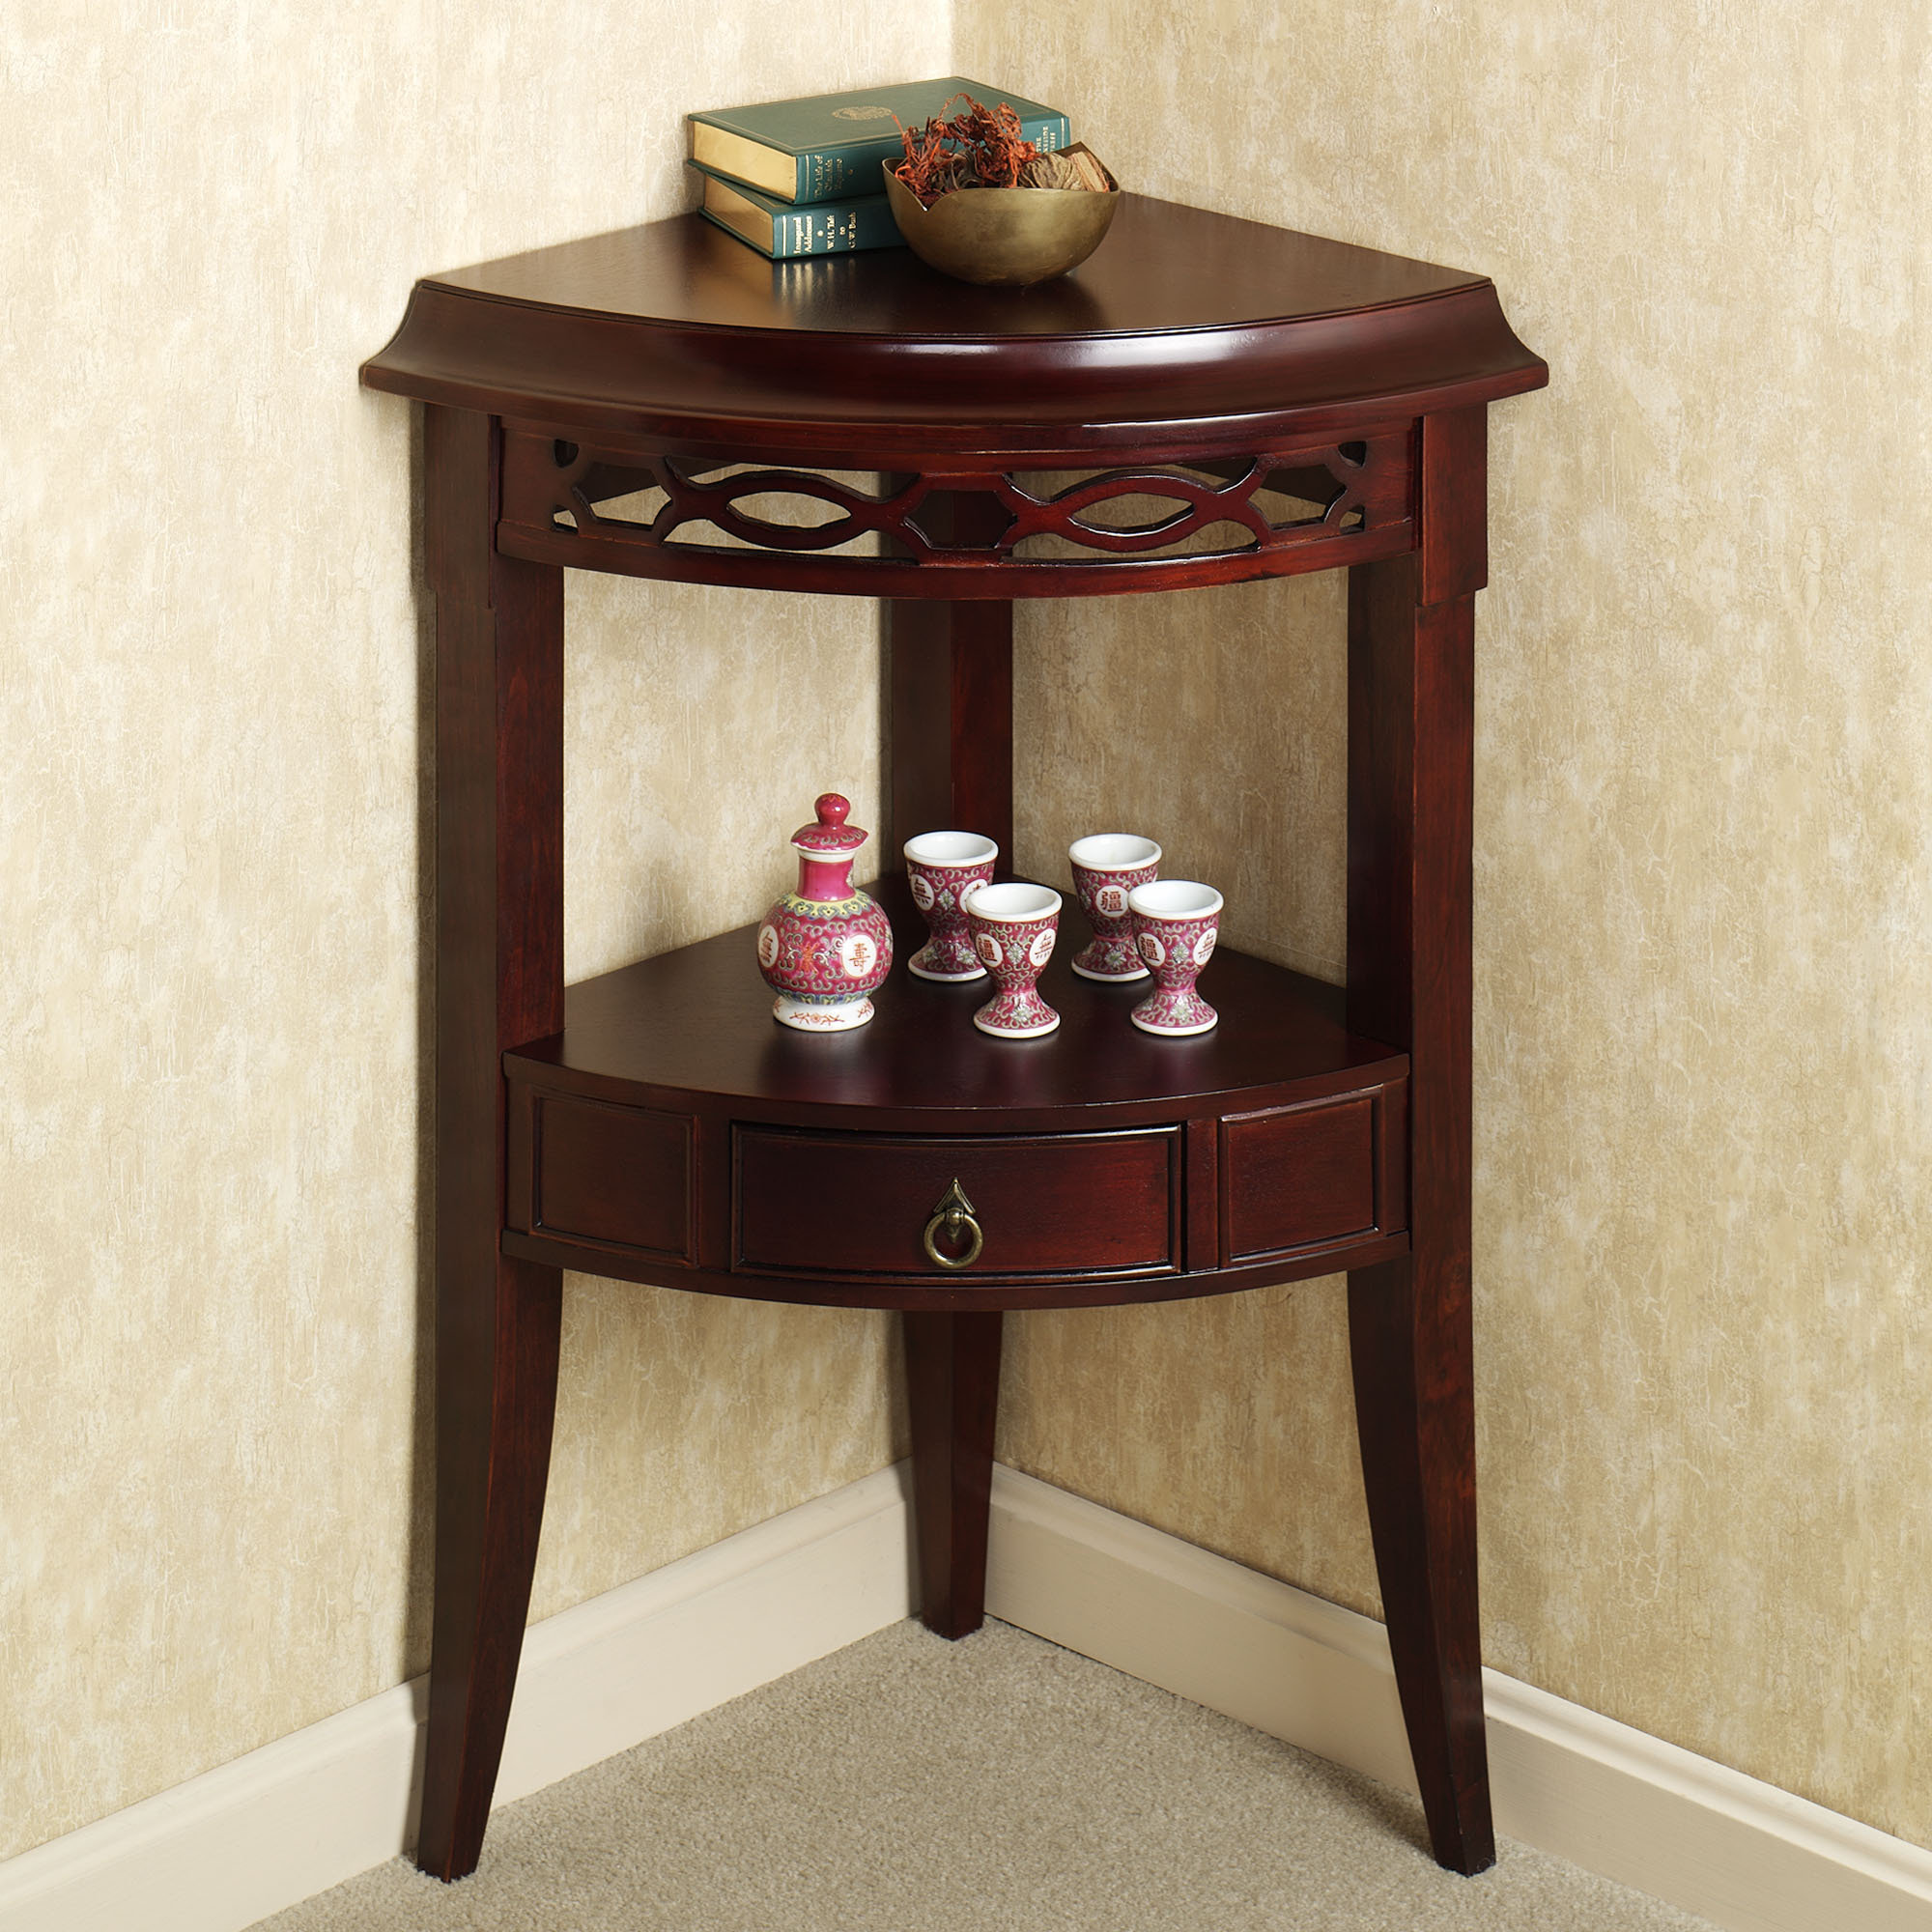 accent furniture storage small corner table classy hallway with baskets white doors rattan side glass top dining runners and placemats chrome door threshold bars round occasional